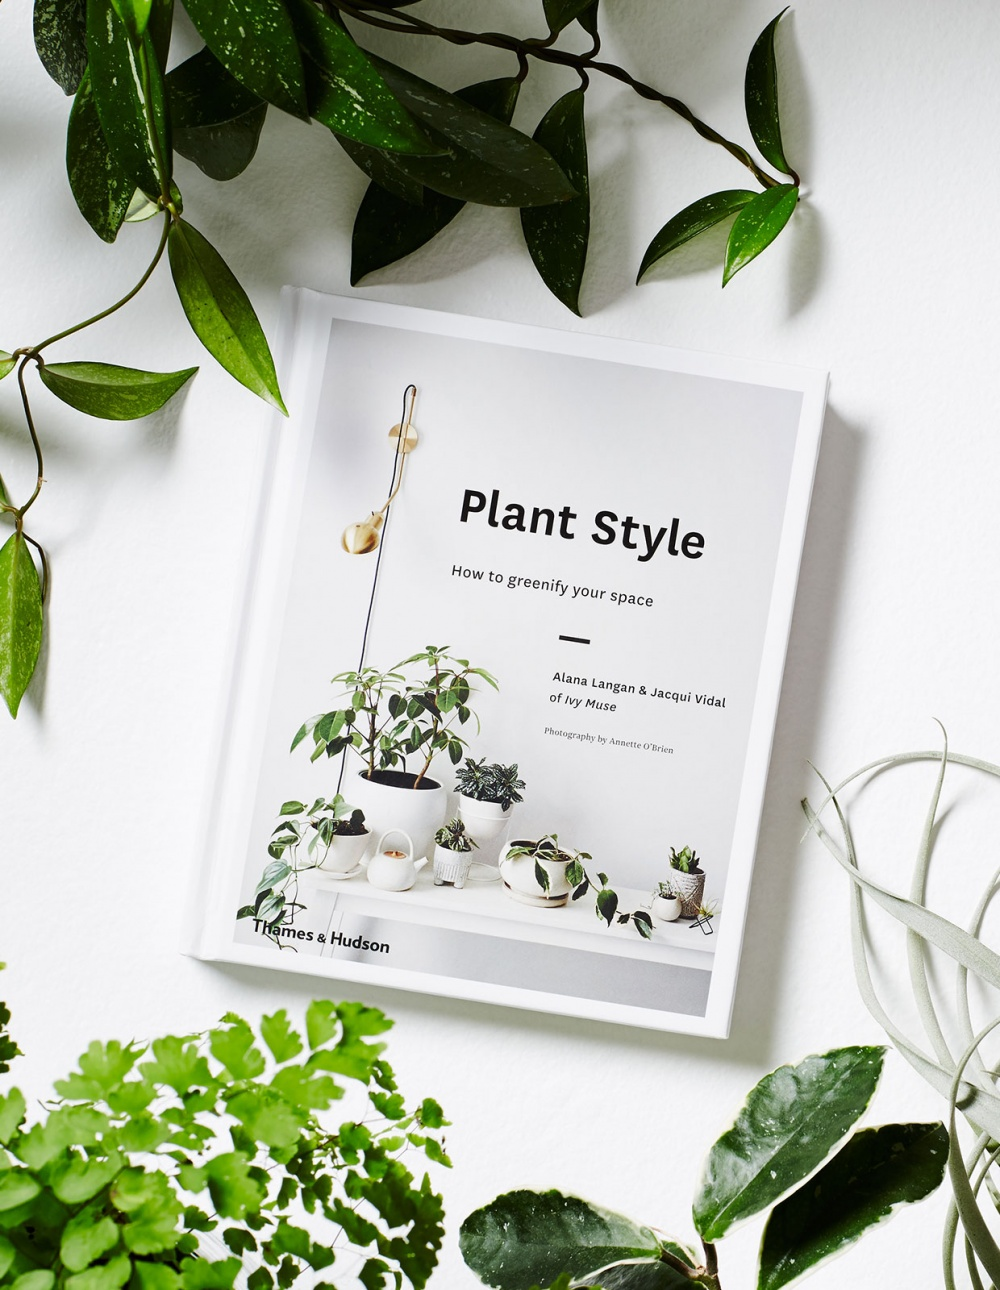 Plant Style: How to greenify your space  by  Alana Langan  and  Jacqui Vidal